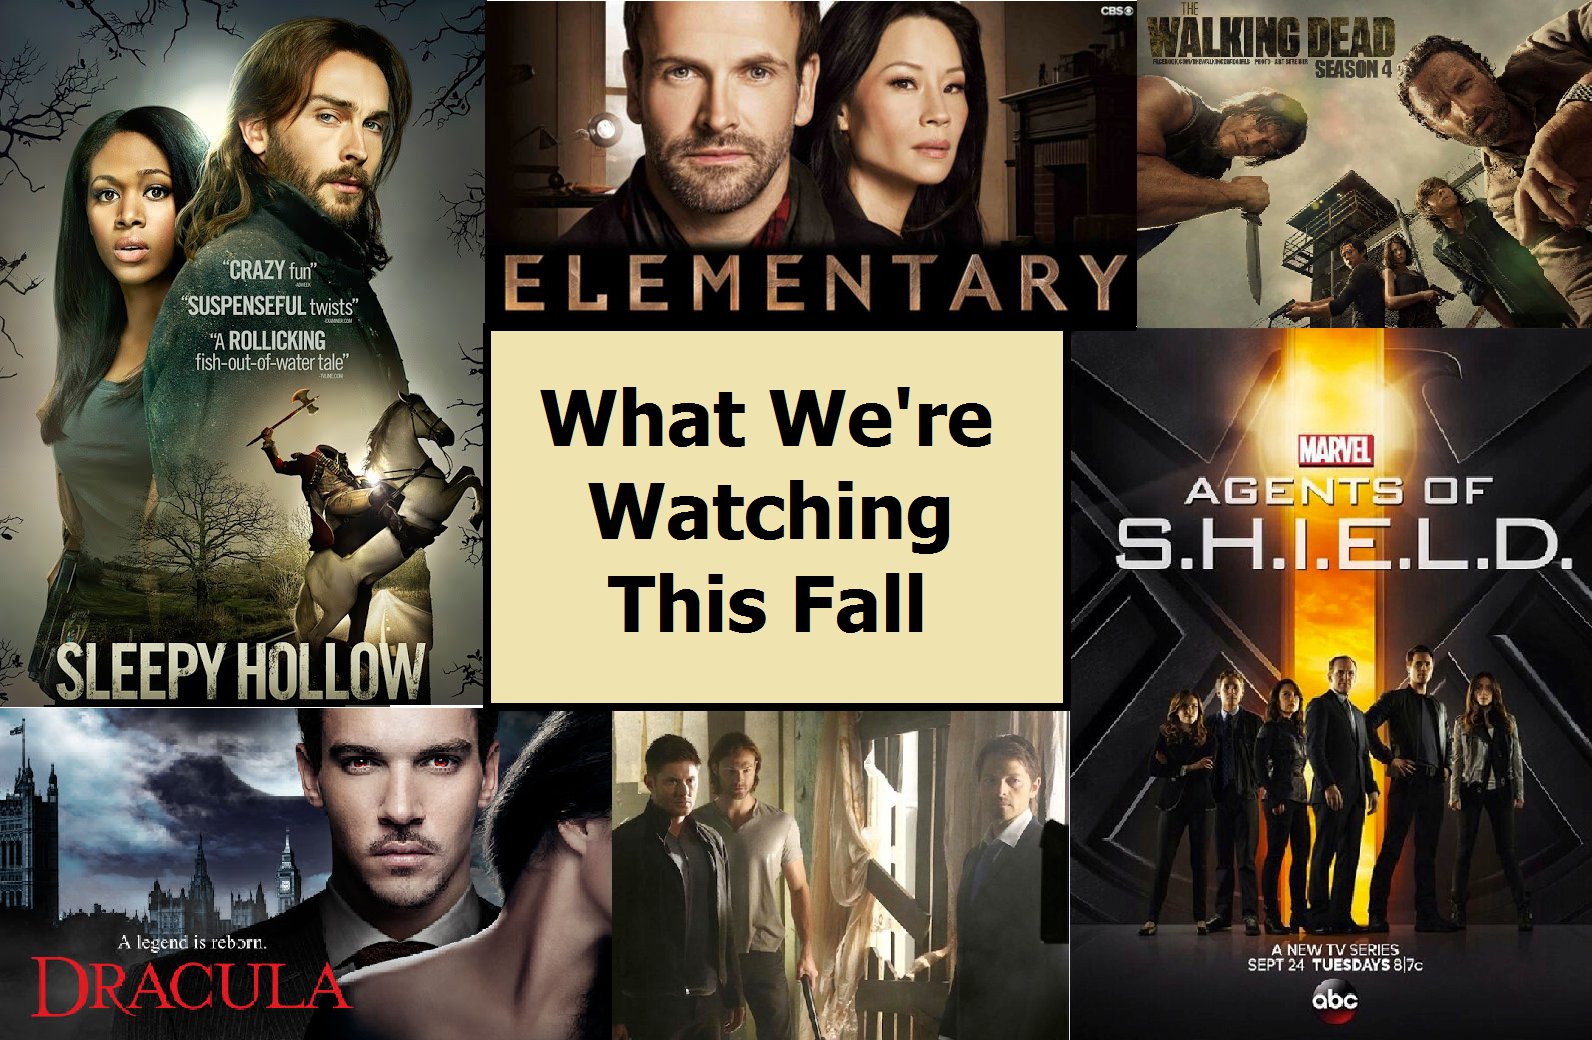 What We're Watching This Fall